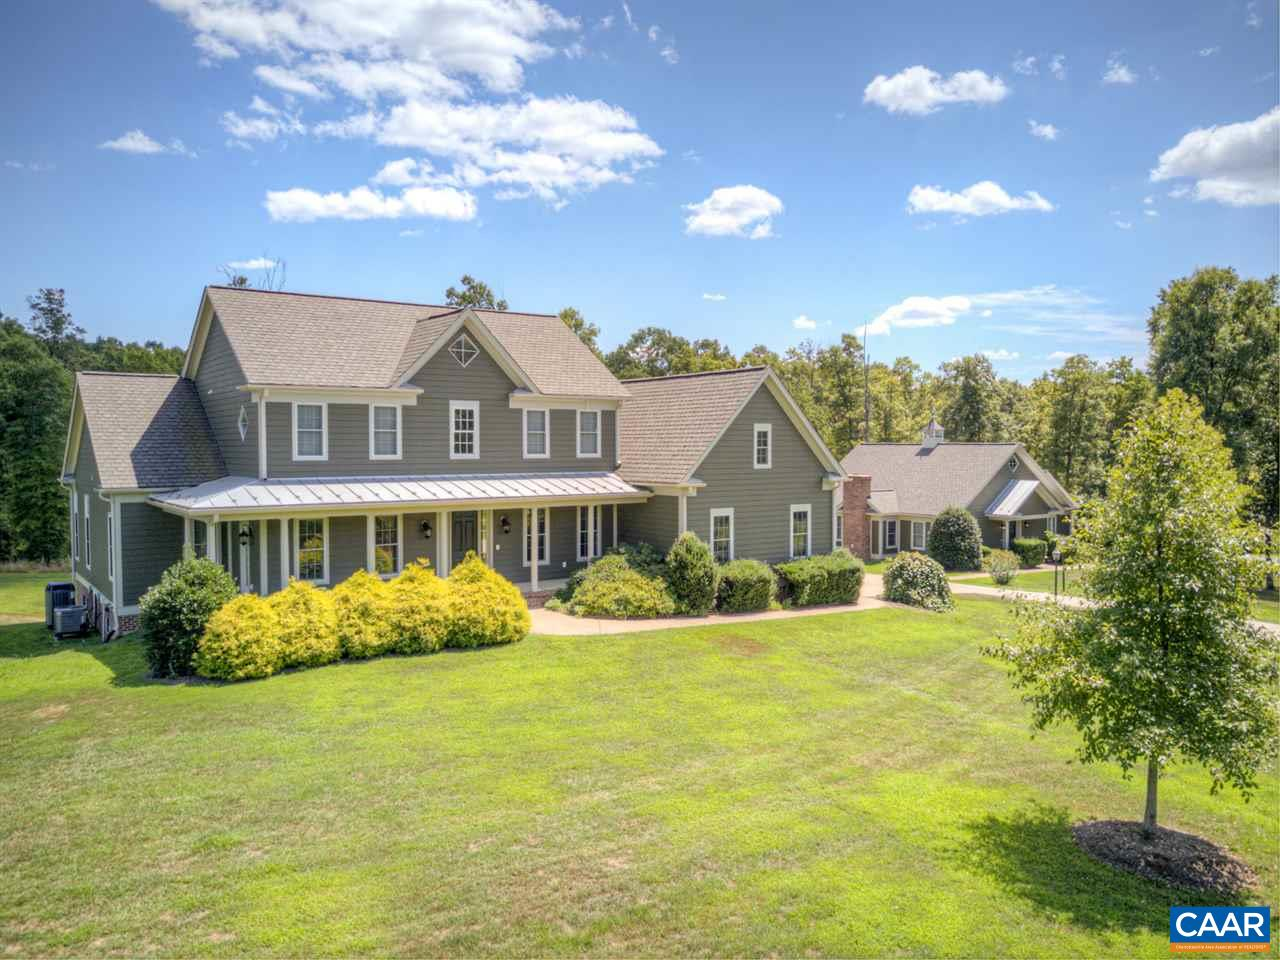 Beautiful home and situated within a short commute to Charlottesville. Discover the peace and tranquility of Llama Farm Road. This stunning location offers a country setting on your private 24+ acre retreat. Complete with Redbuds, Dogwoods, and an orchard and a multi-functioning cottage. The home has a spacious dining area perfect for entertaining and socializing. The modern hardwood floors complement the floor to ceiling custom built cabinetry. Situated next to the main residence you will find a cozy cottage great for a mother-in-law suite, a possible home for your never-left home or returning child, or a great studio/office. Landscaping, paved driveways, and a whole house generator complete this incredible offering.